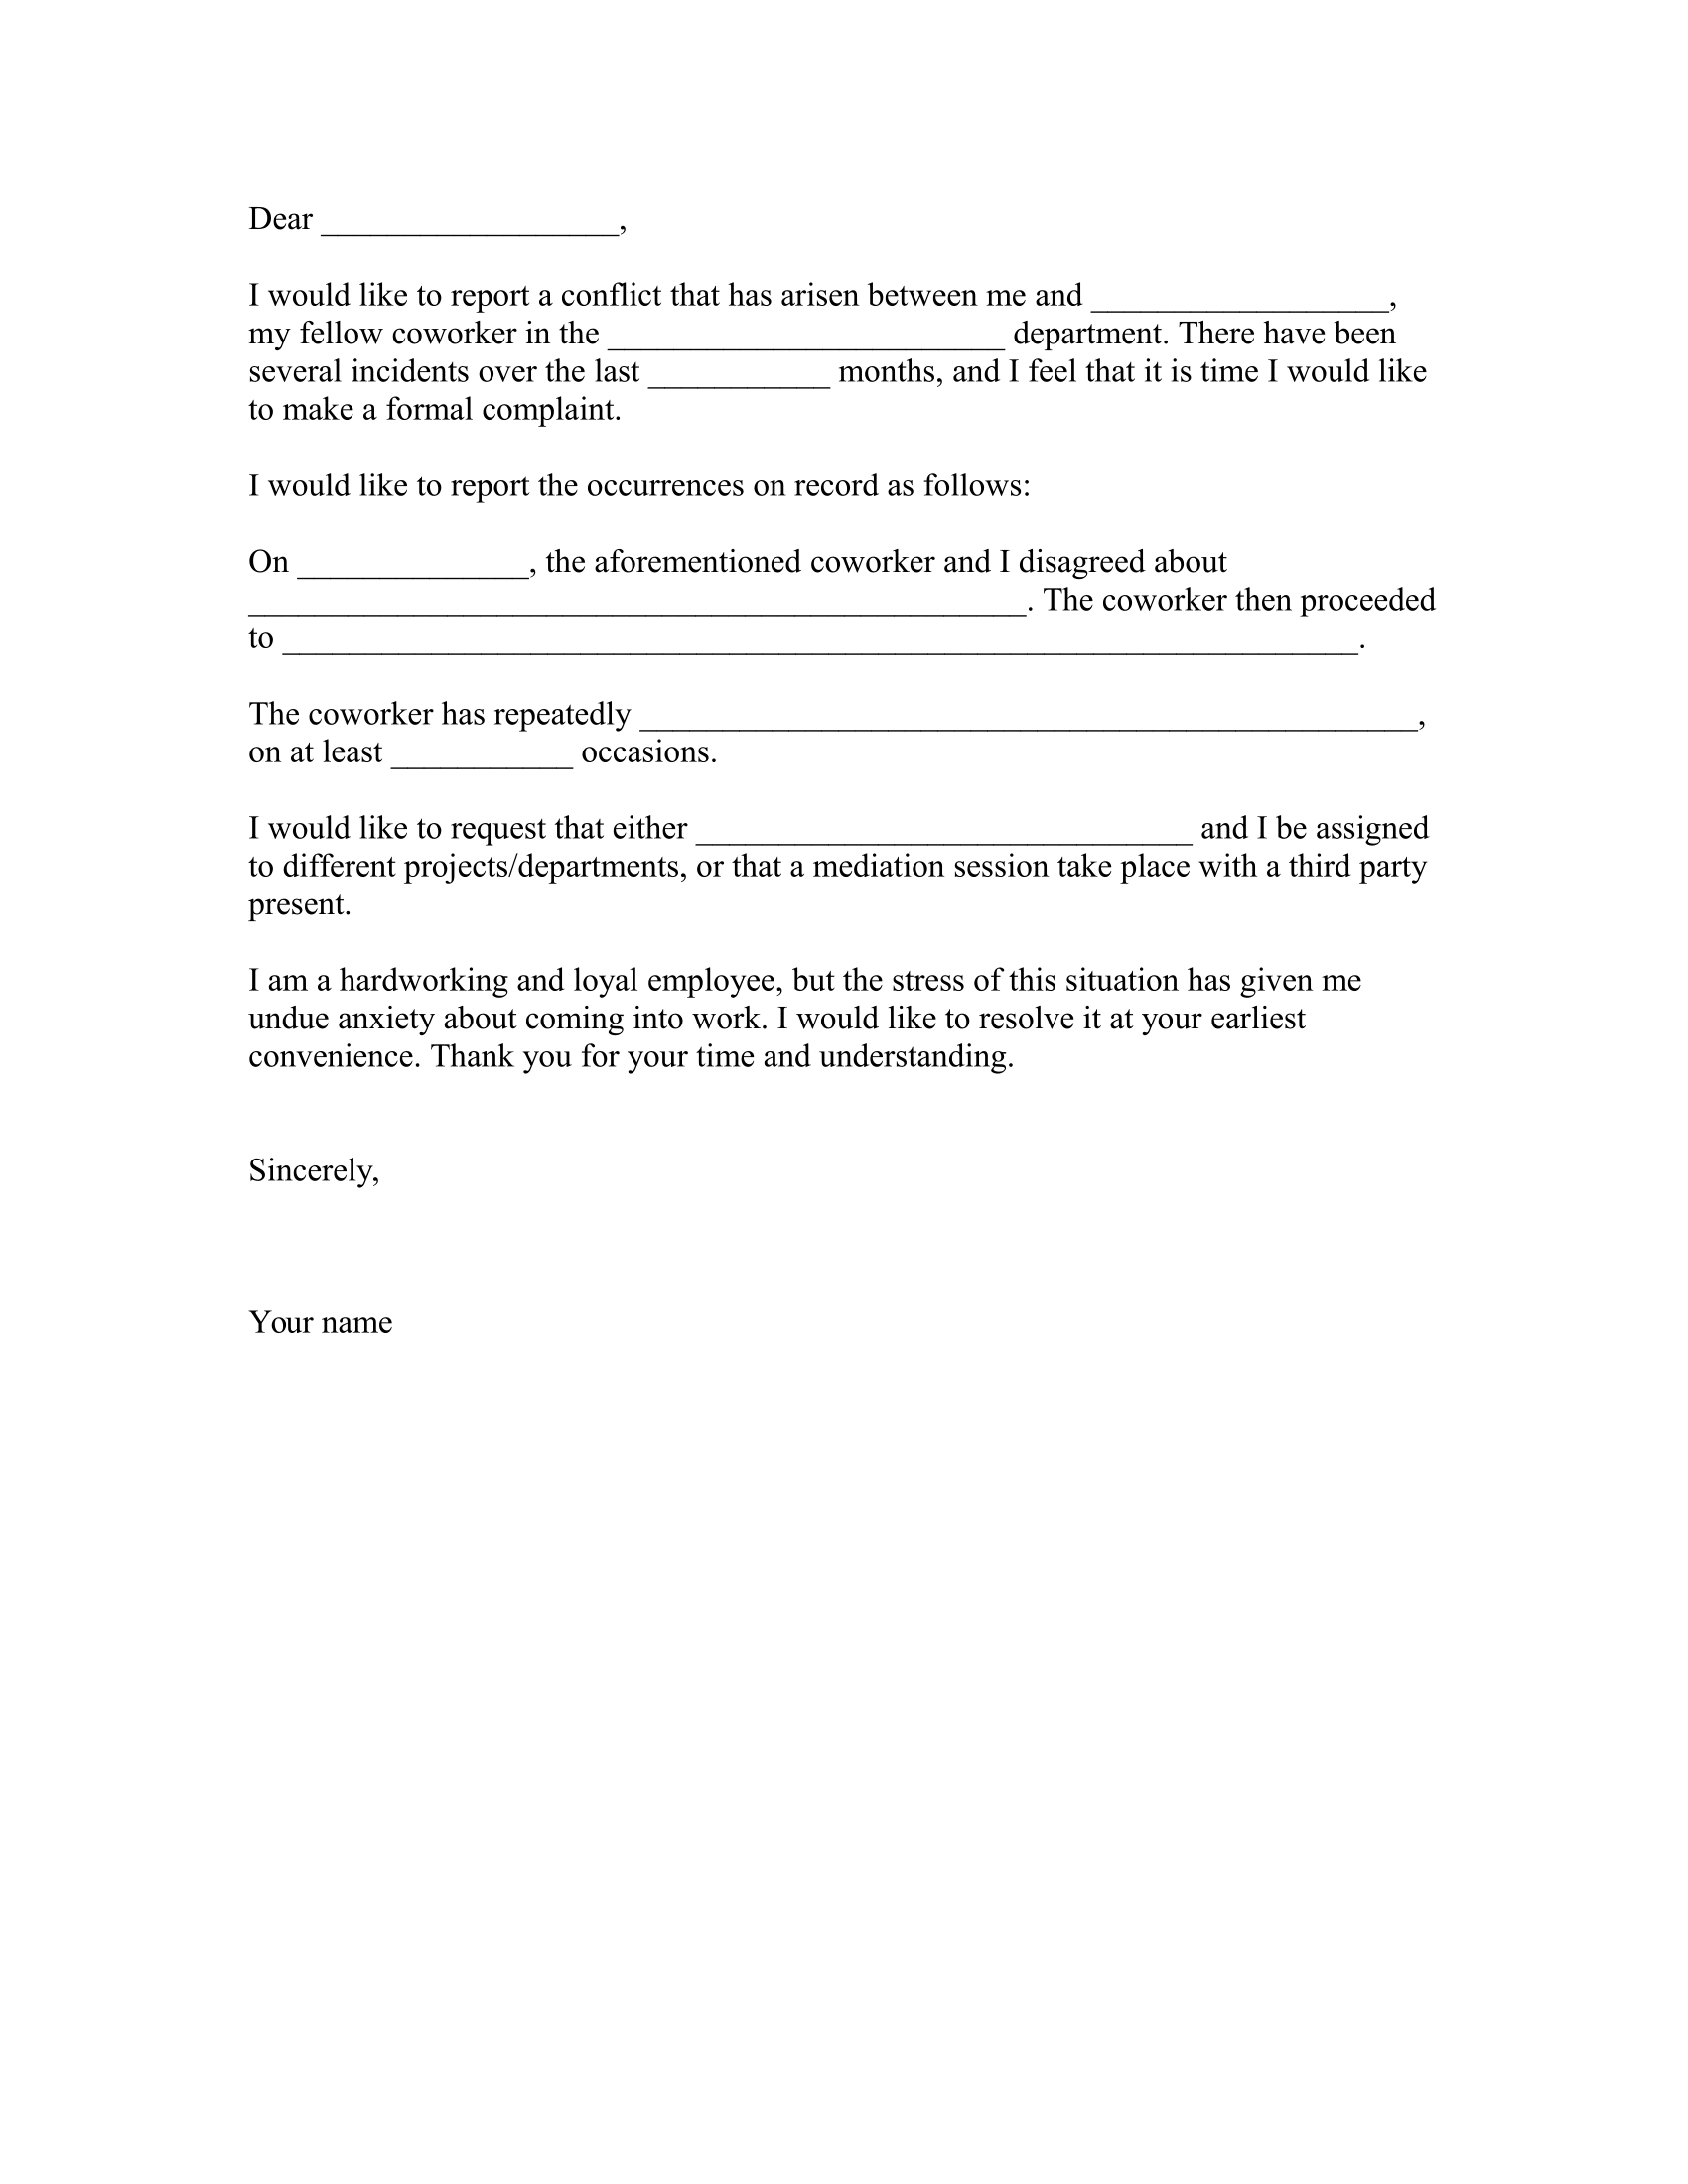 Letter Formats  Download Free Business Letter Templates Forms